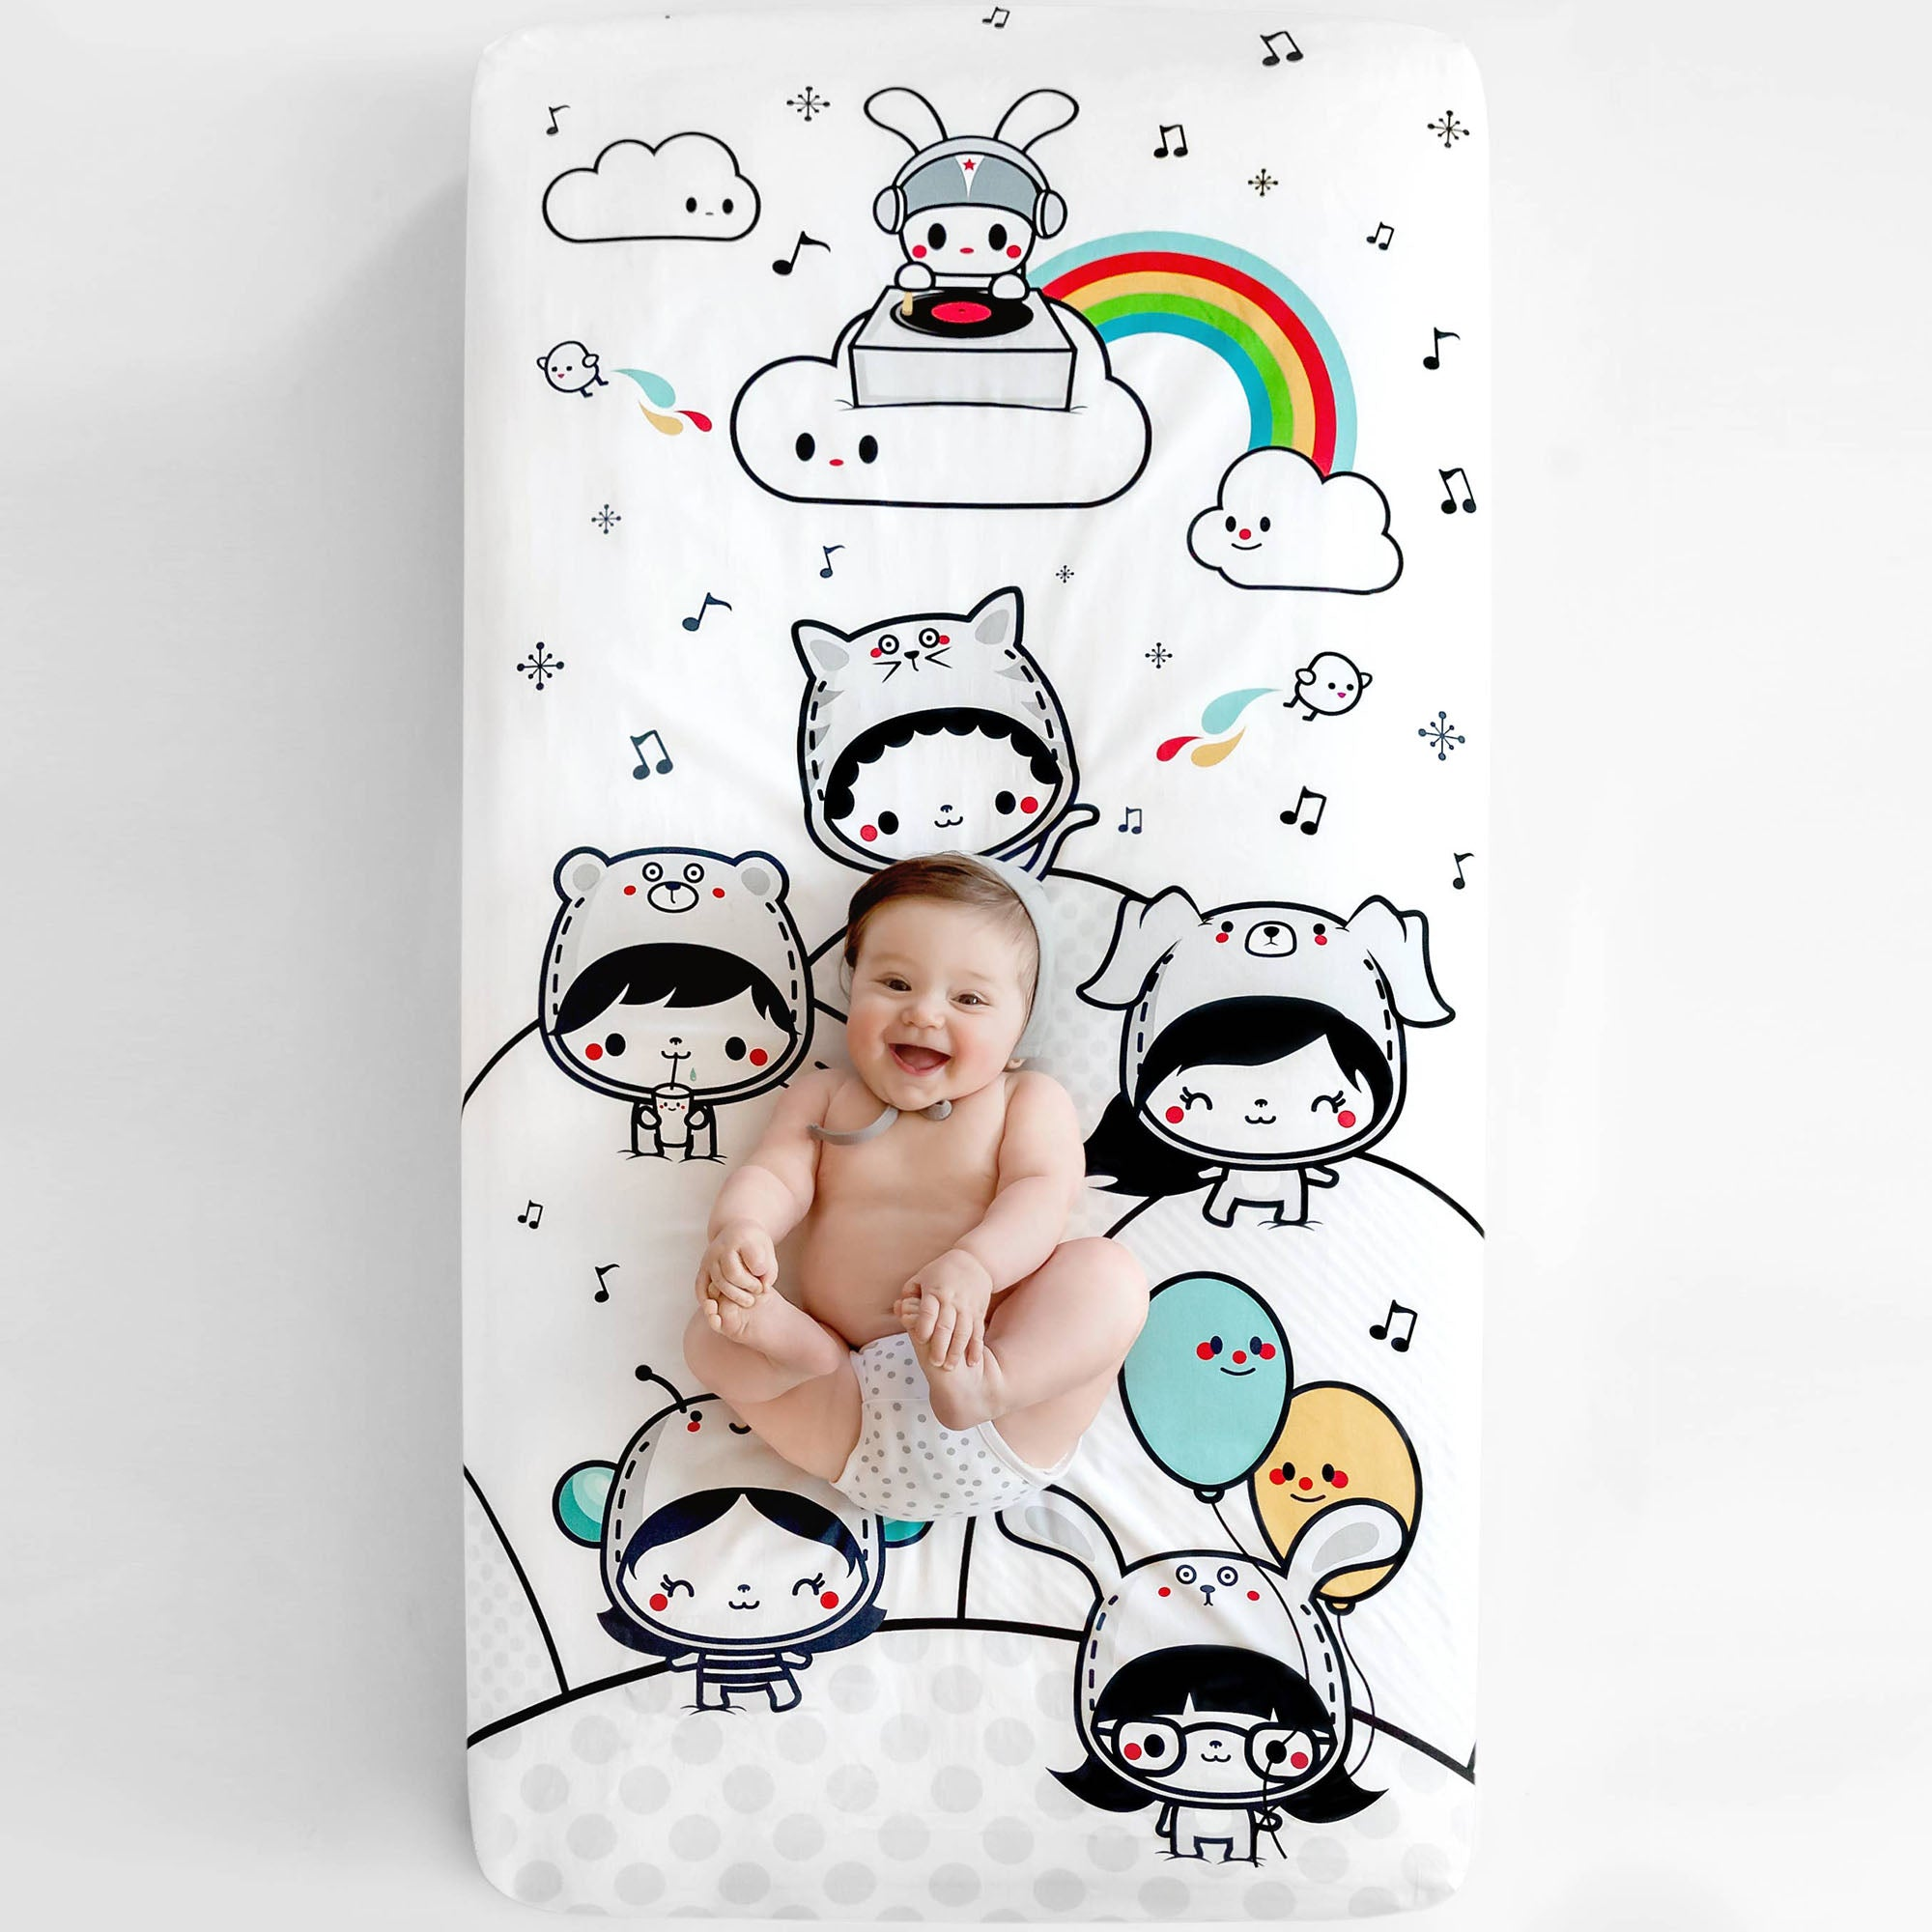 Rookie Humans Organic Cotton Crib Sheet - Party In My Crib